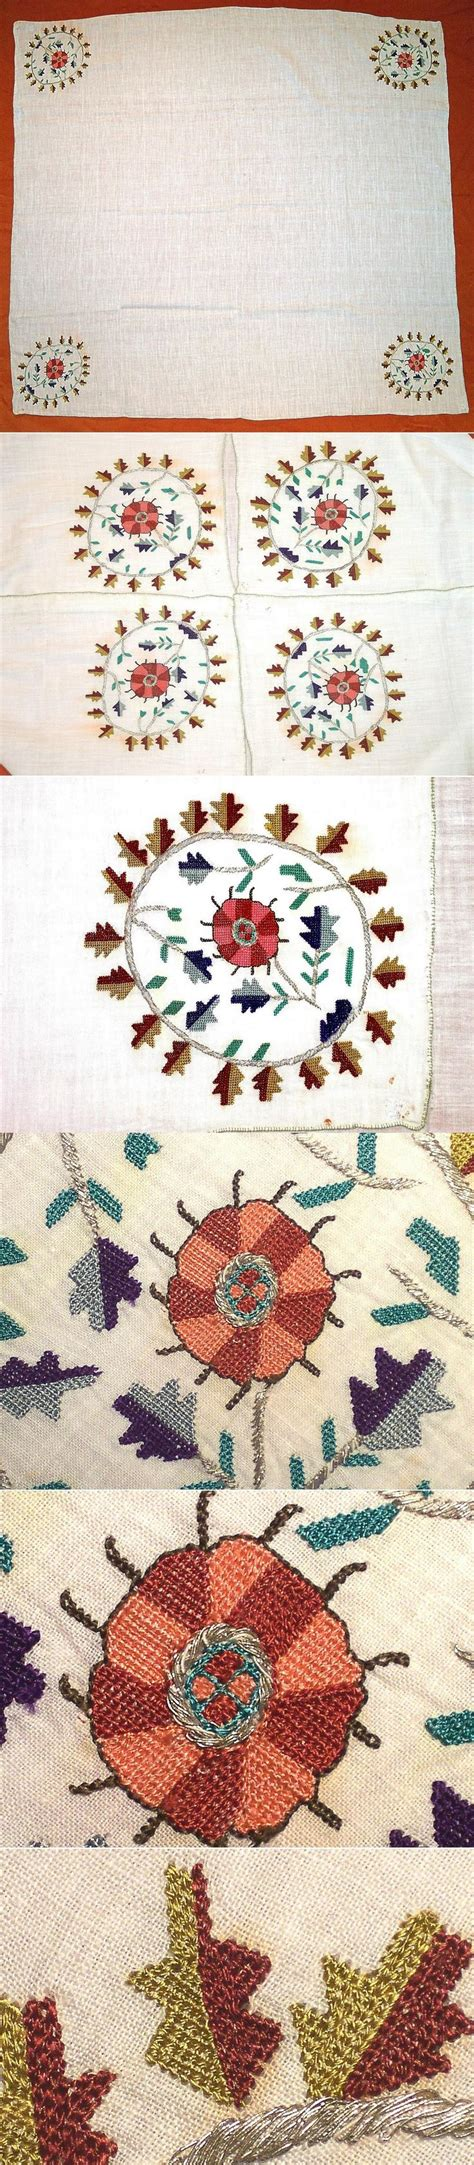 lowongan kerja design embroidery a 231 evre square kerchief a decorative accessory for